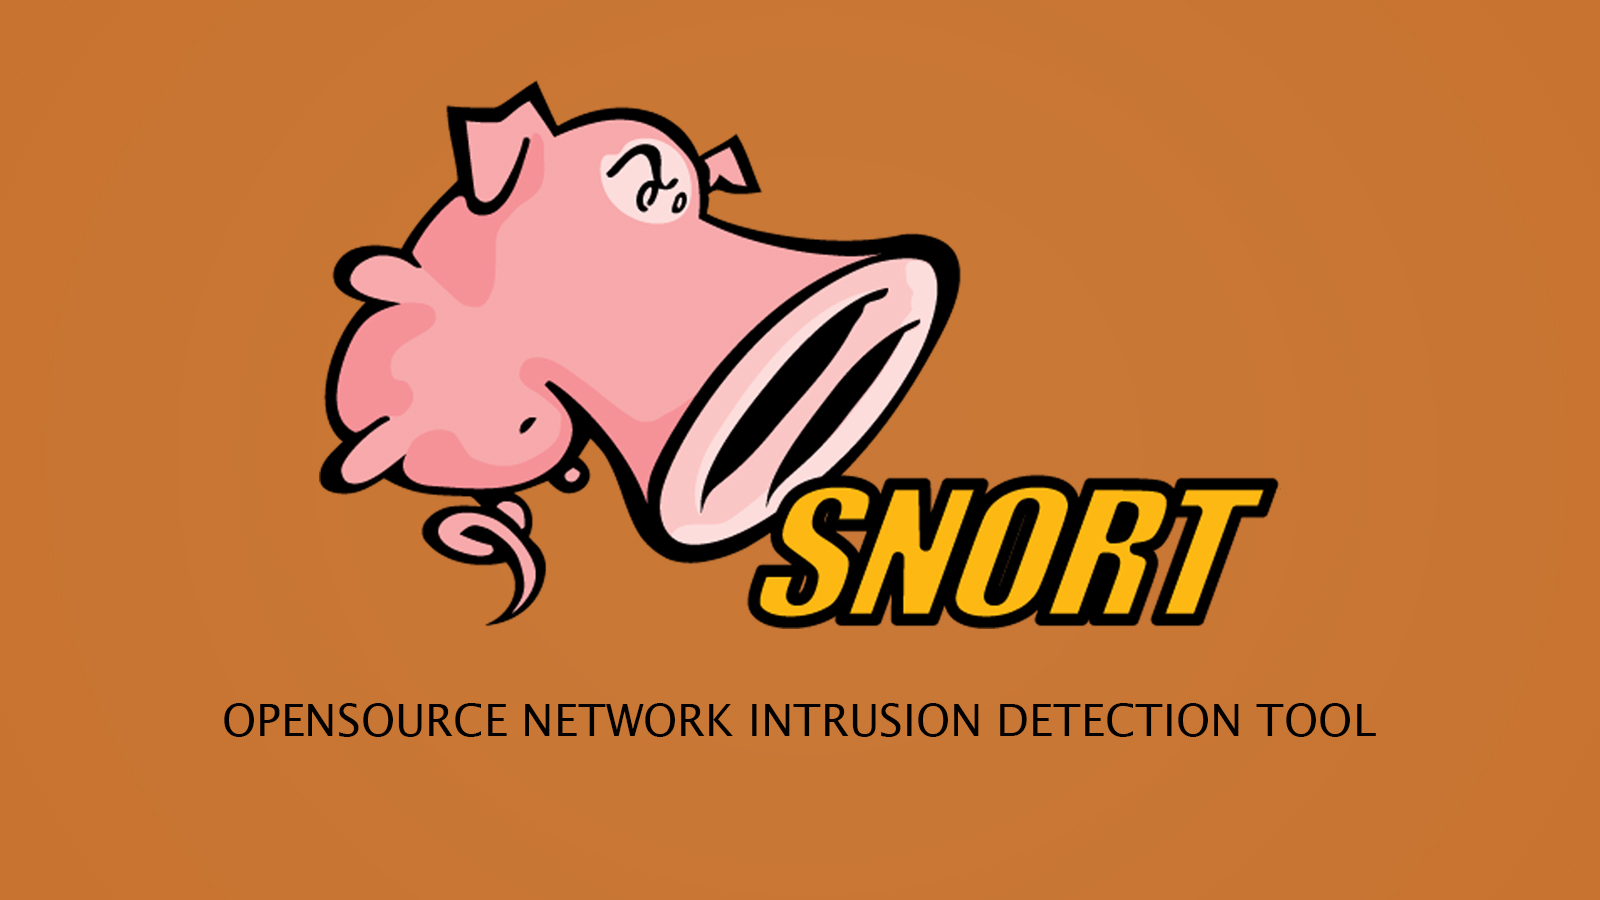 Snort - OpenSource Network Intrusion Detection Tool